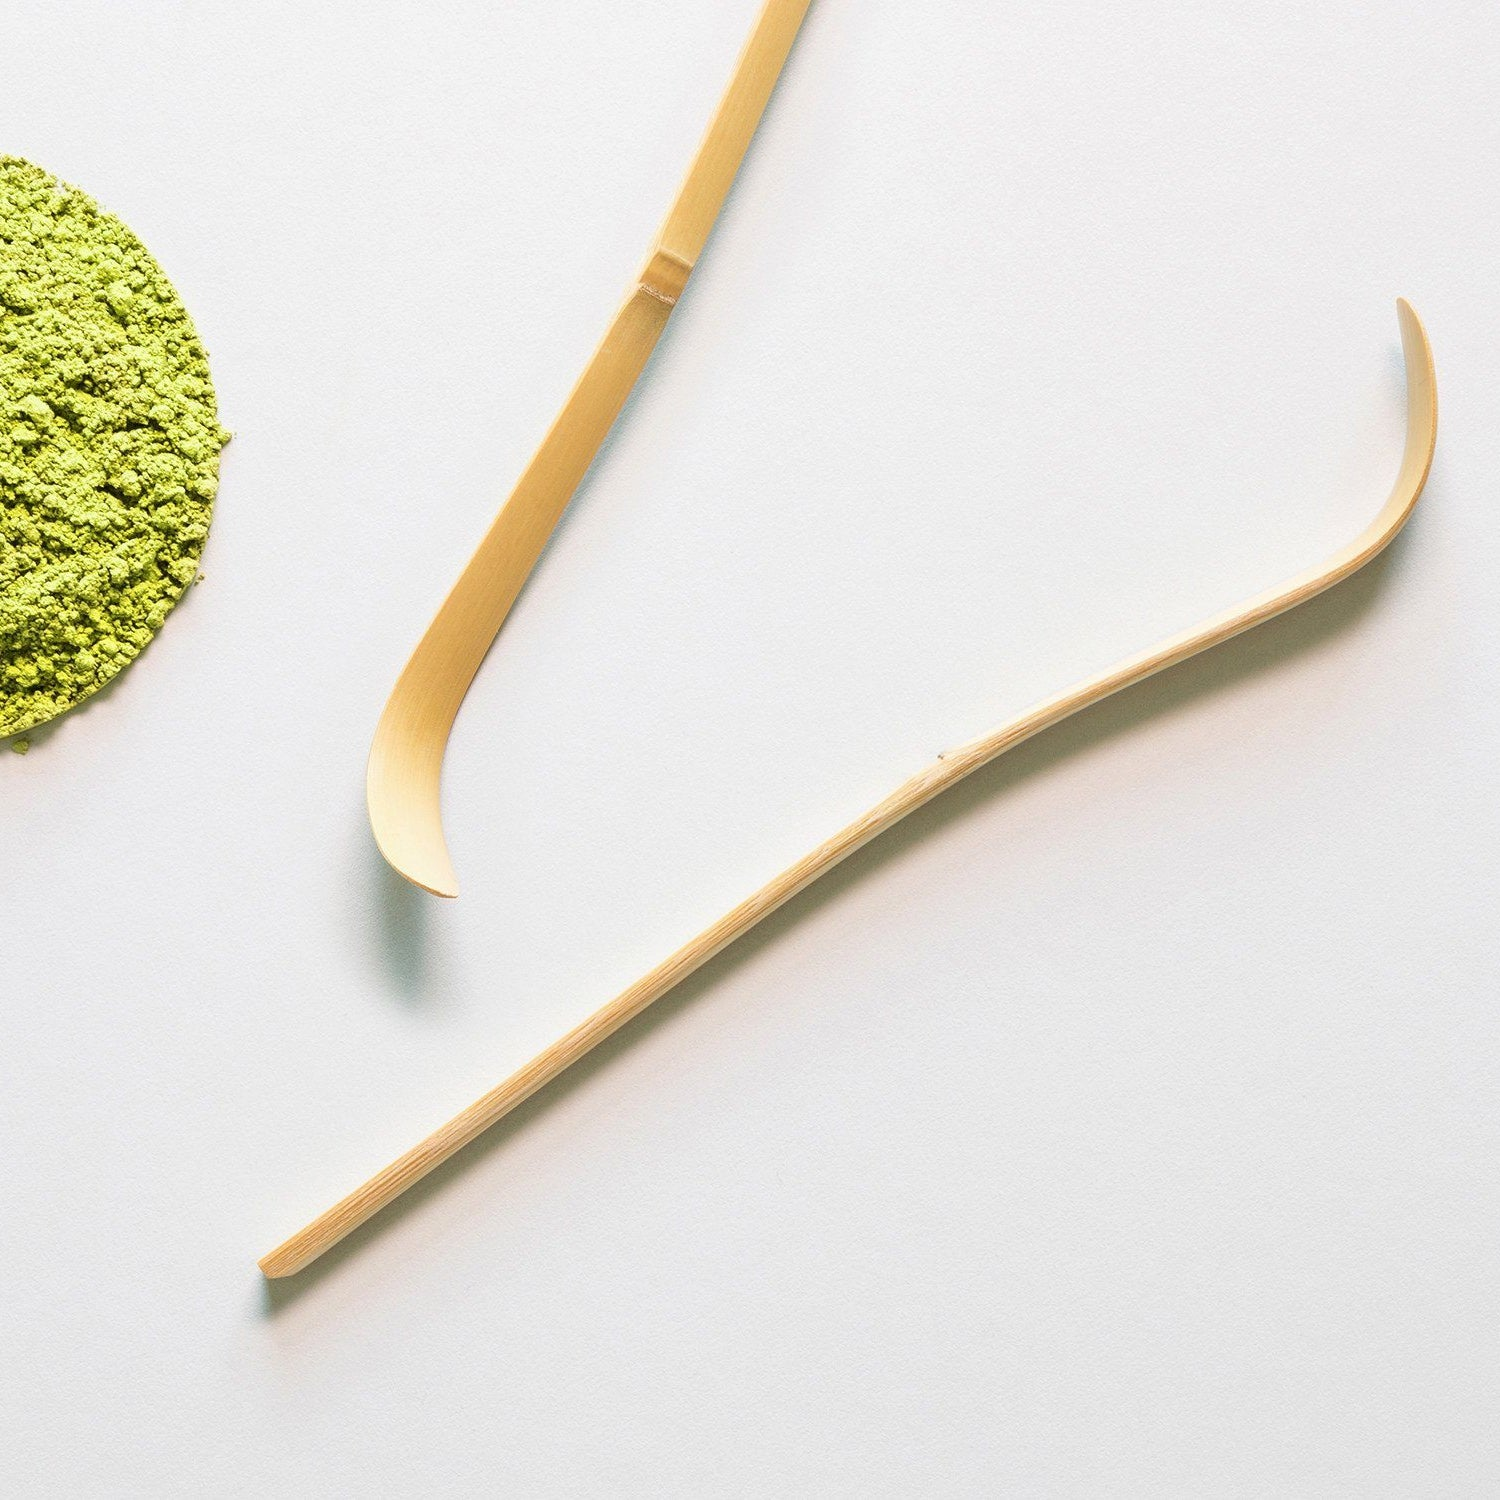 Matcha Scoop Accessories The Rabbit Hole - Australian Made Tea